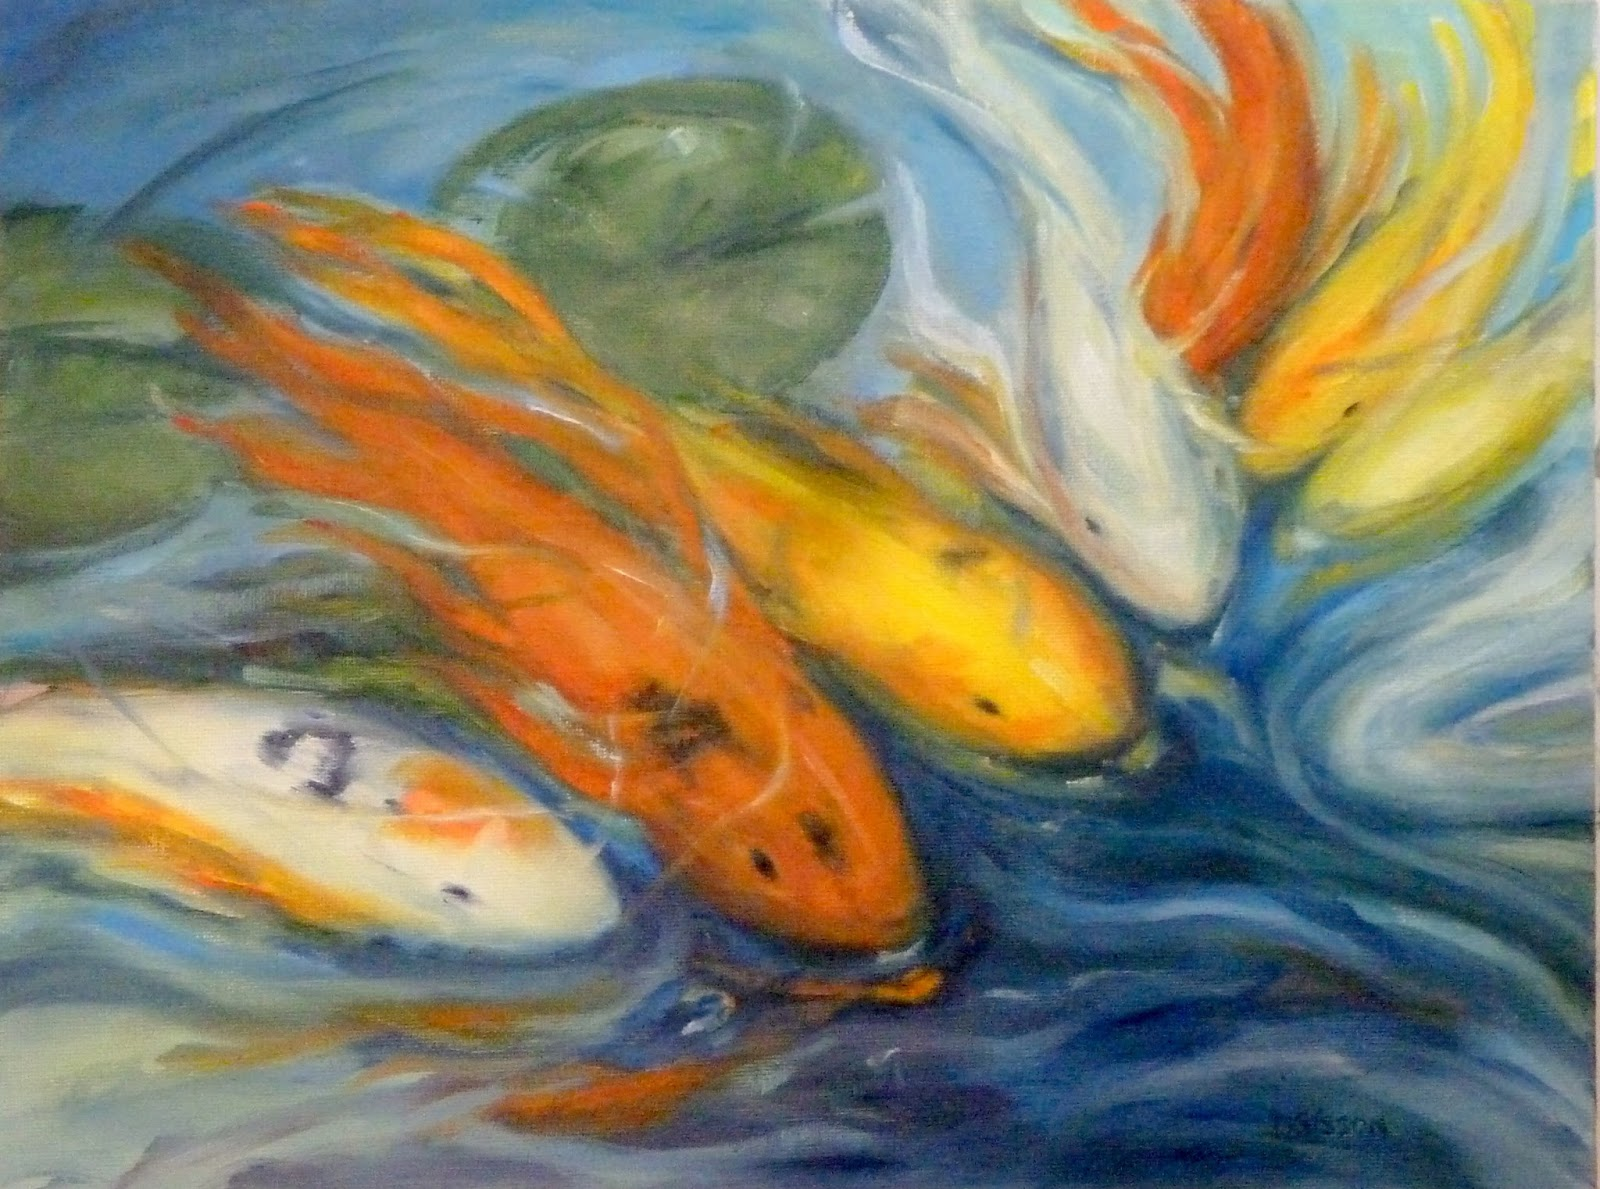 Daily painting projects koi school fish oil painting koi for Koi fish canvas art